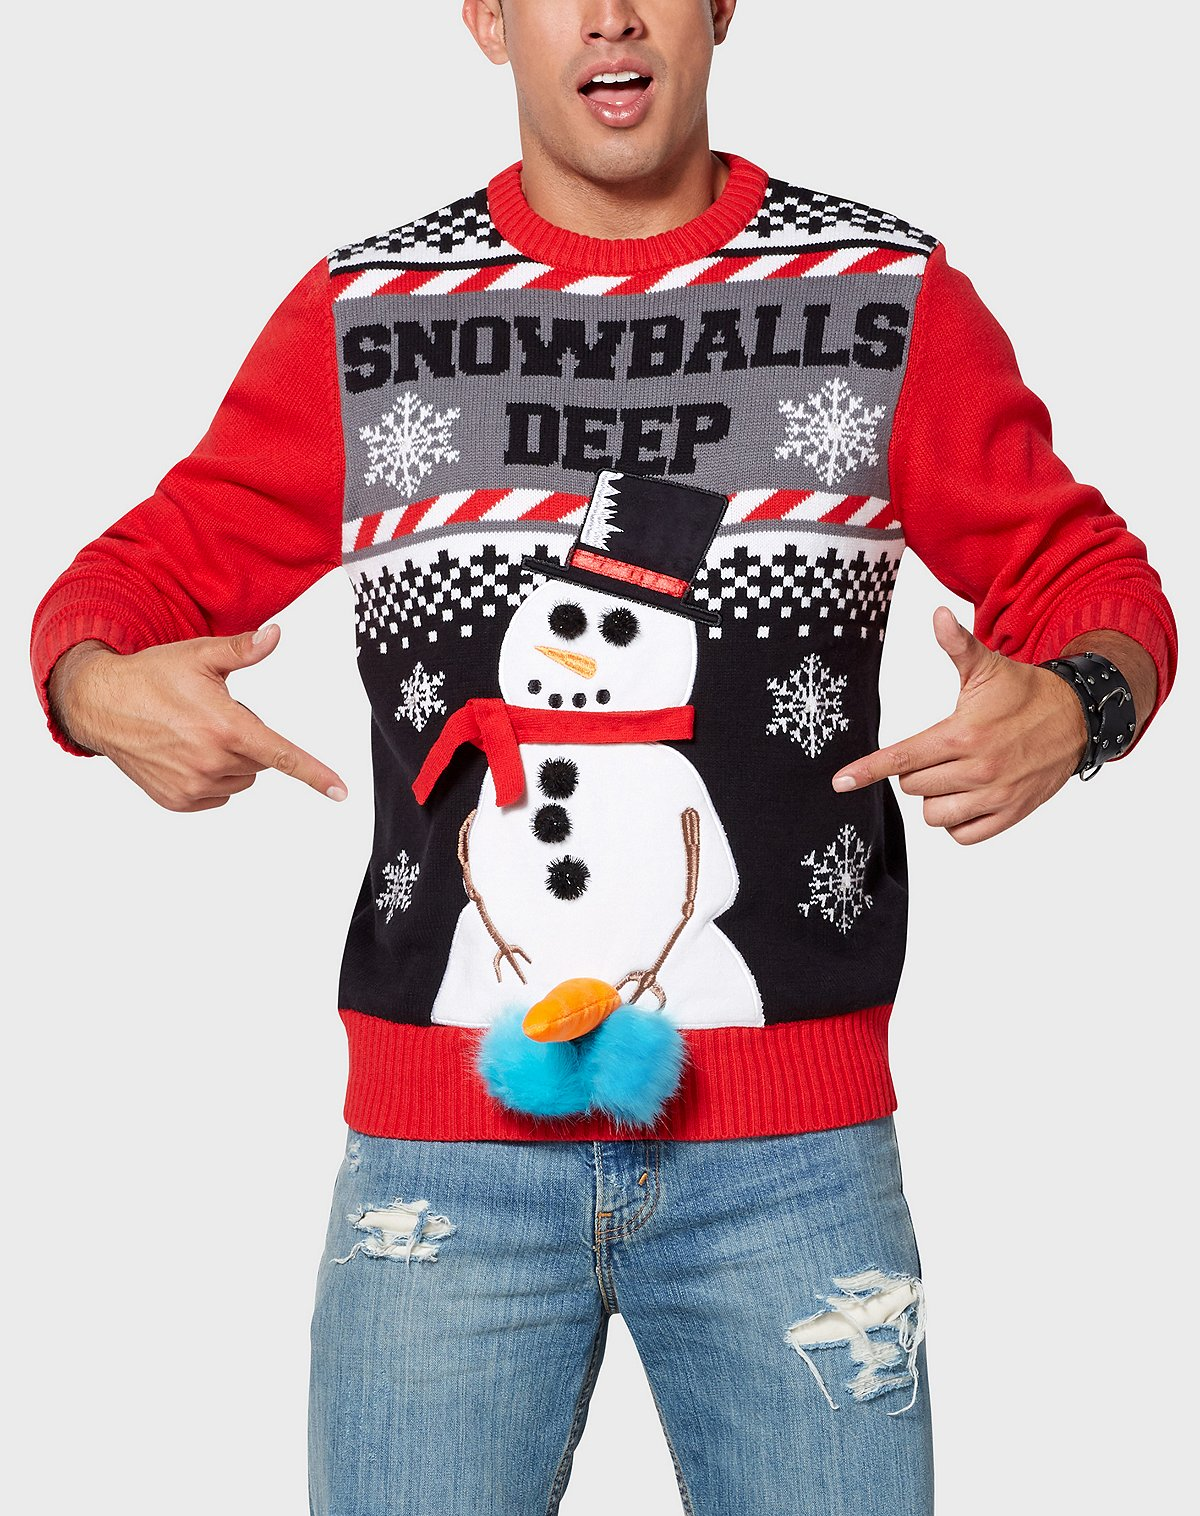 Spencers Ugly Christmas Sweaters.Top 10 Funny Ugly Christmas Sweaters Of 2018 Spencers